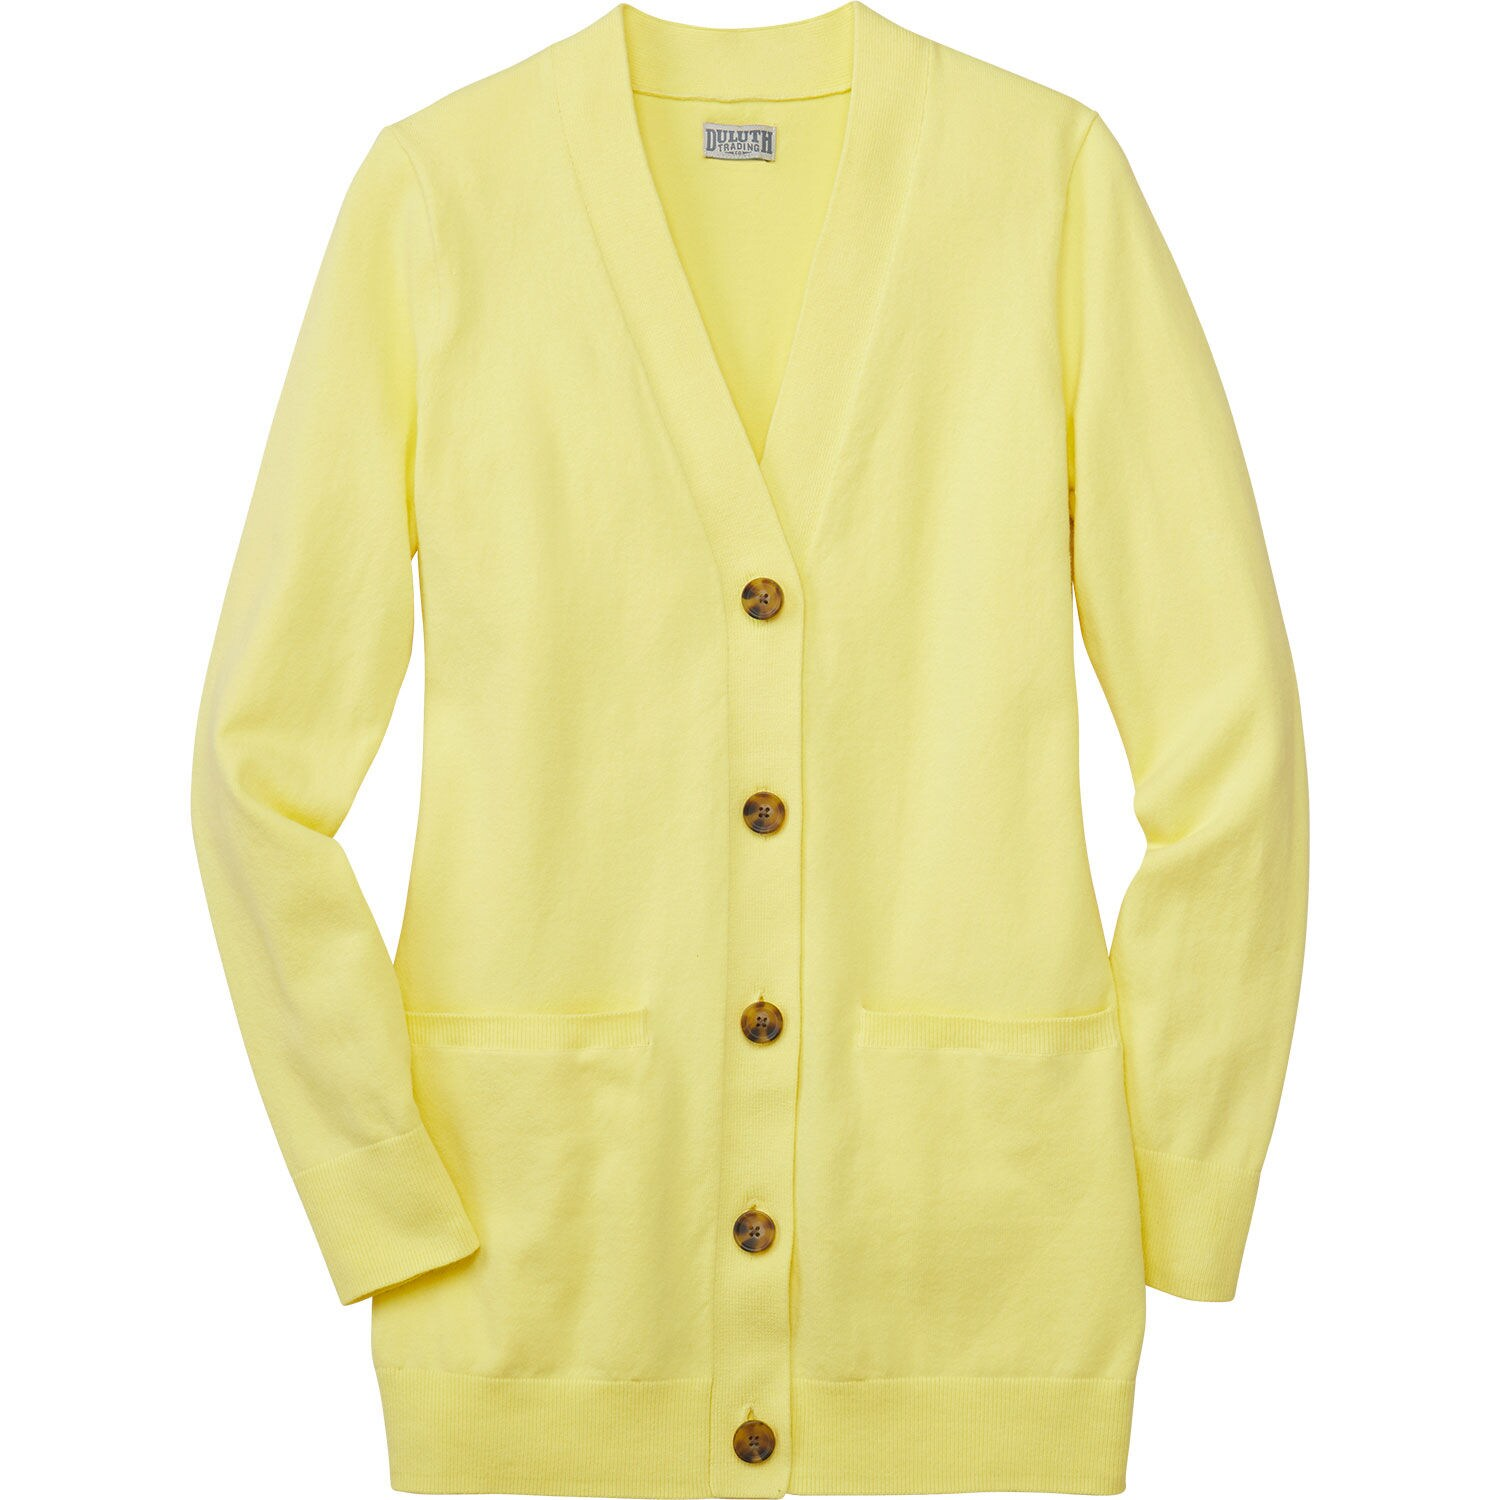 Frieed Women V Neck 3/4 Sleeve Knitted Button Up Cardigan Sweater